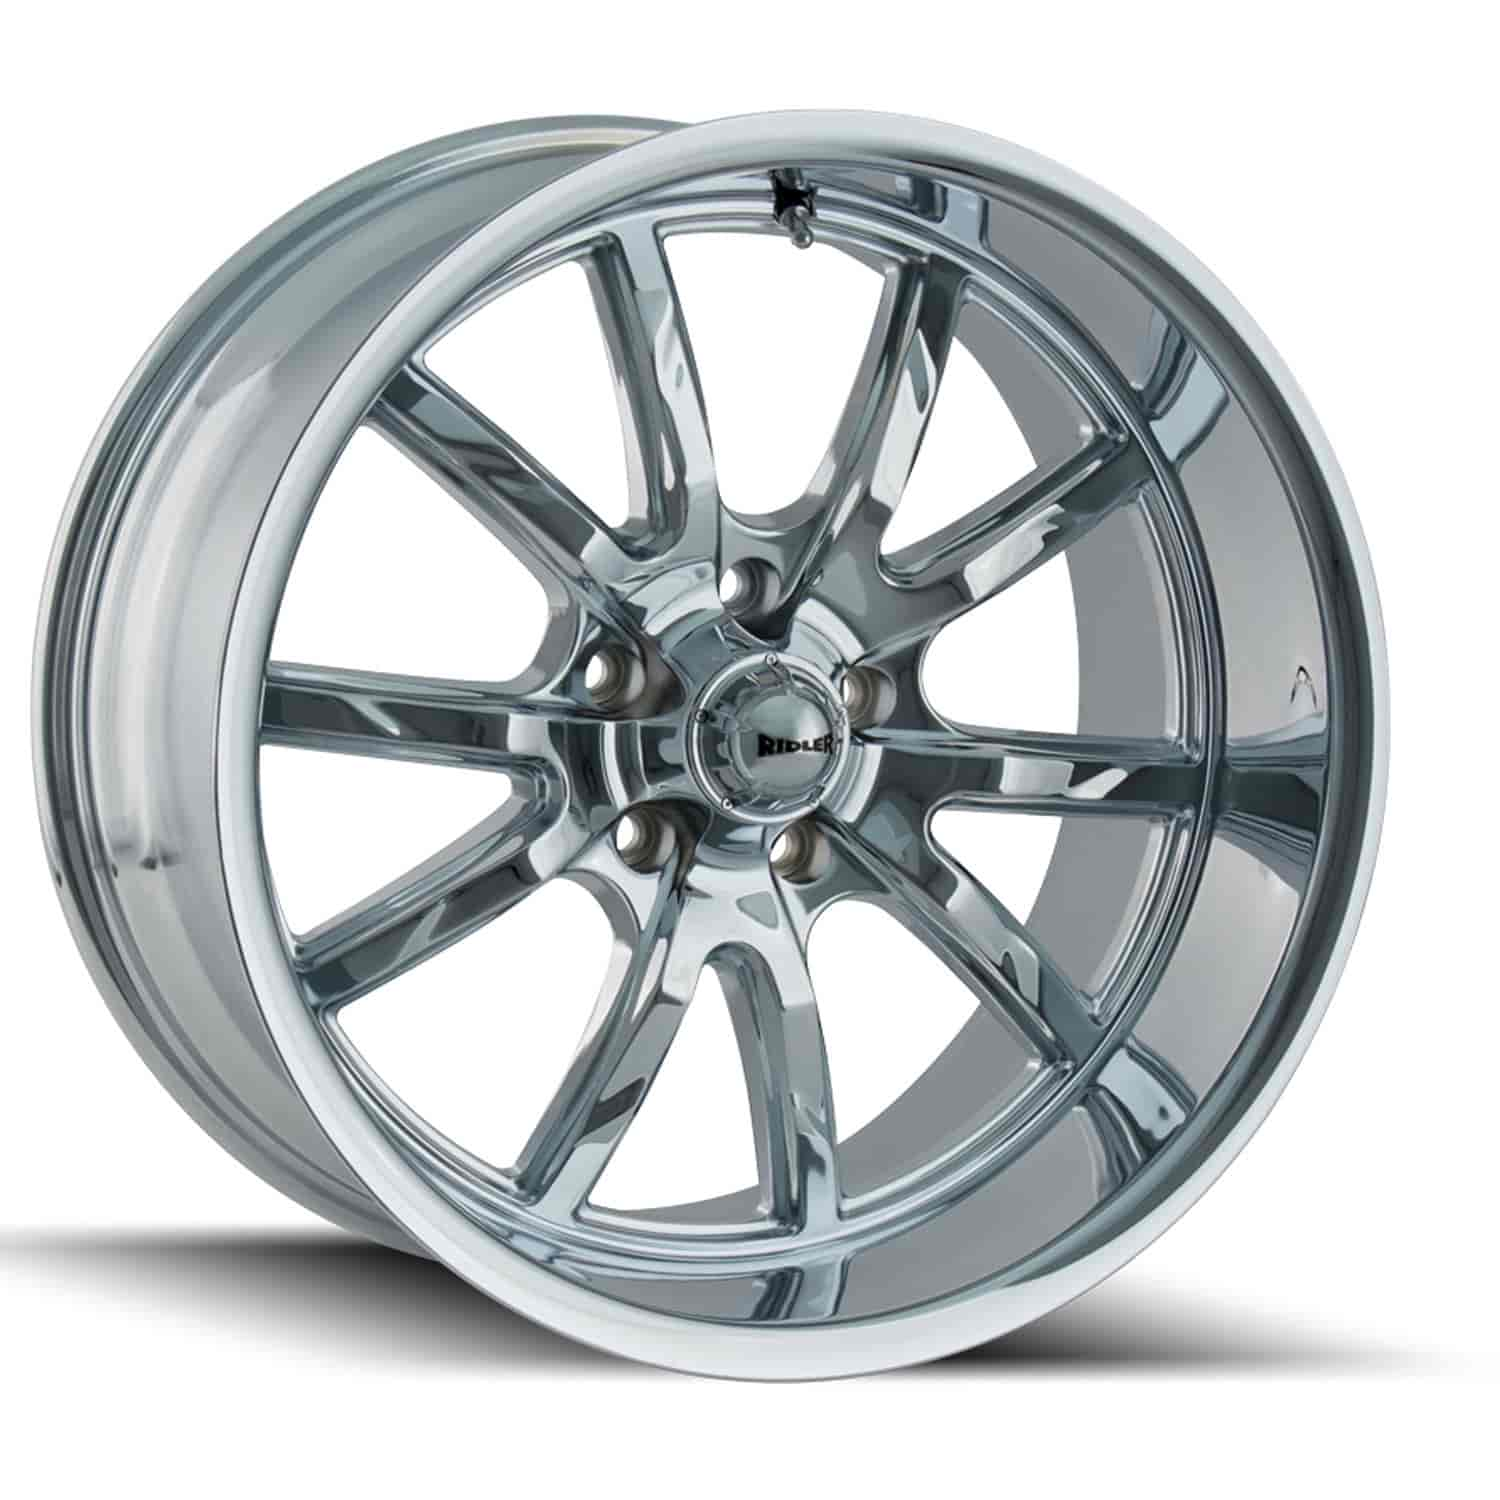 The Wheel Group 650-22965G35